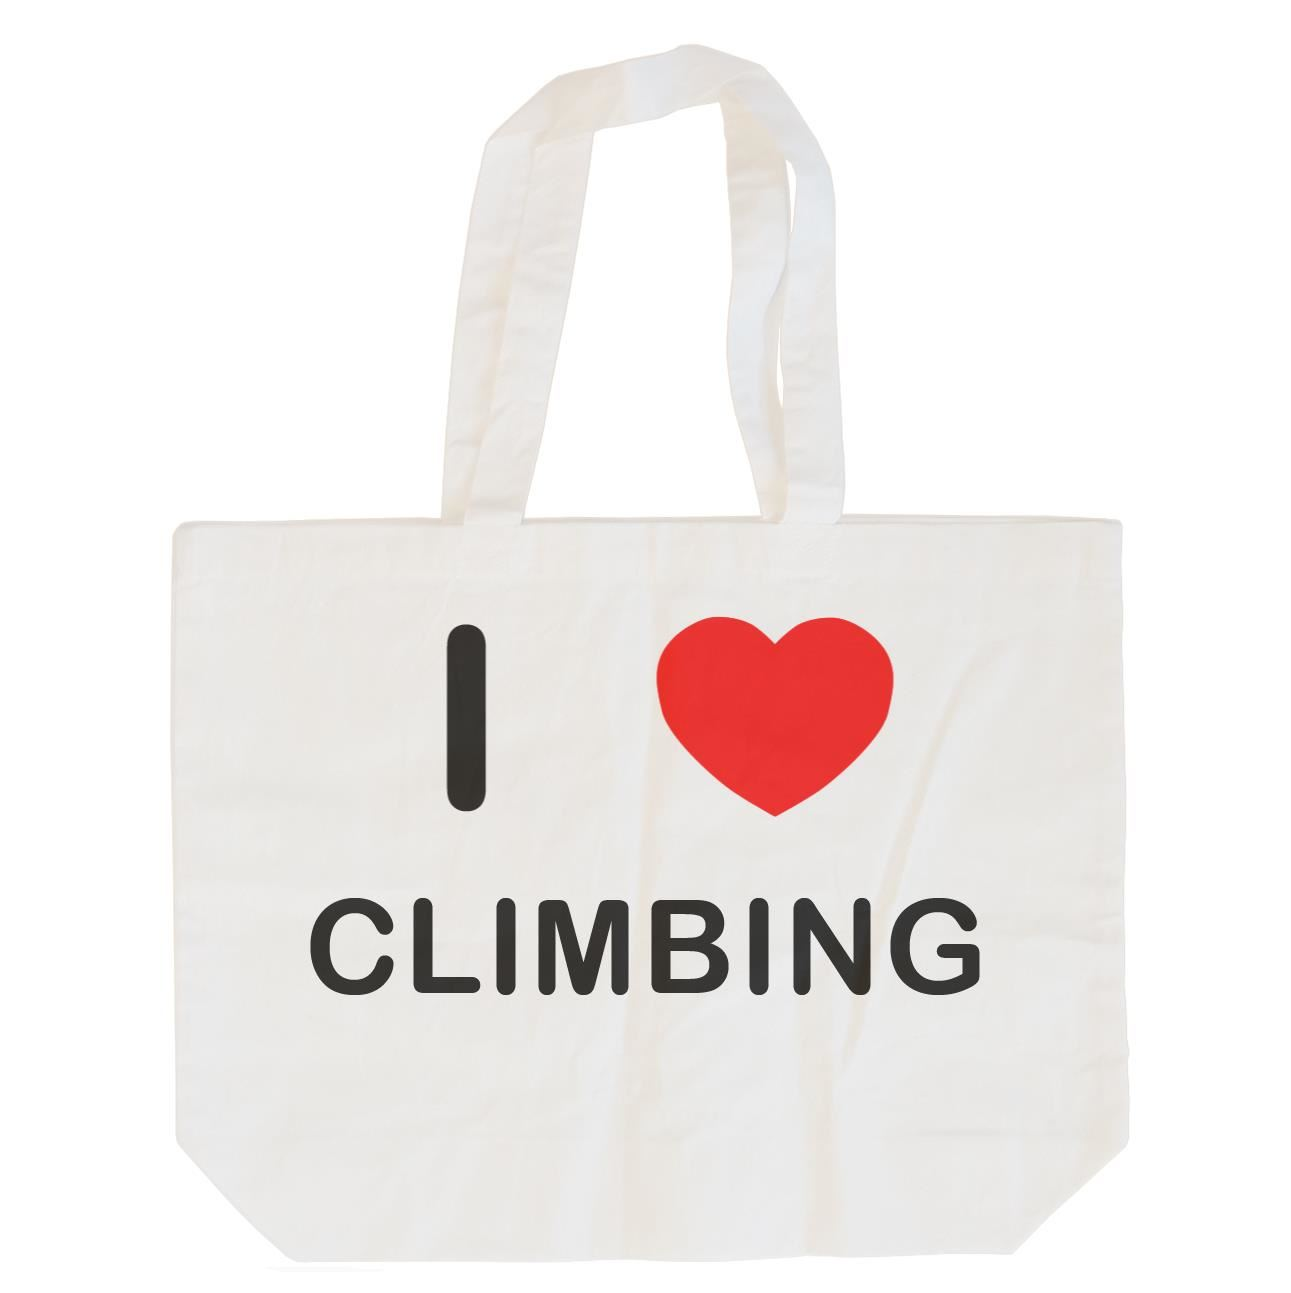 I Love Climbing - Cotton Bag | Size choice Tote, Shopper or Sling